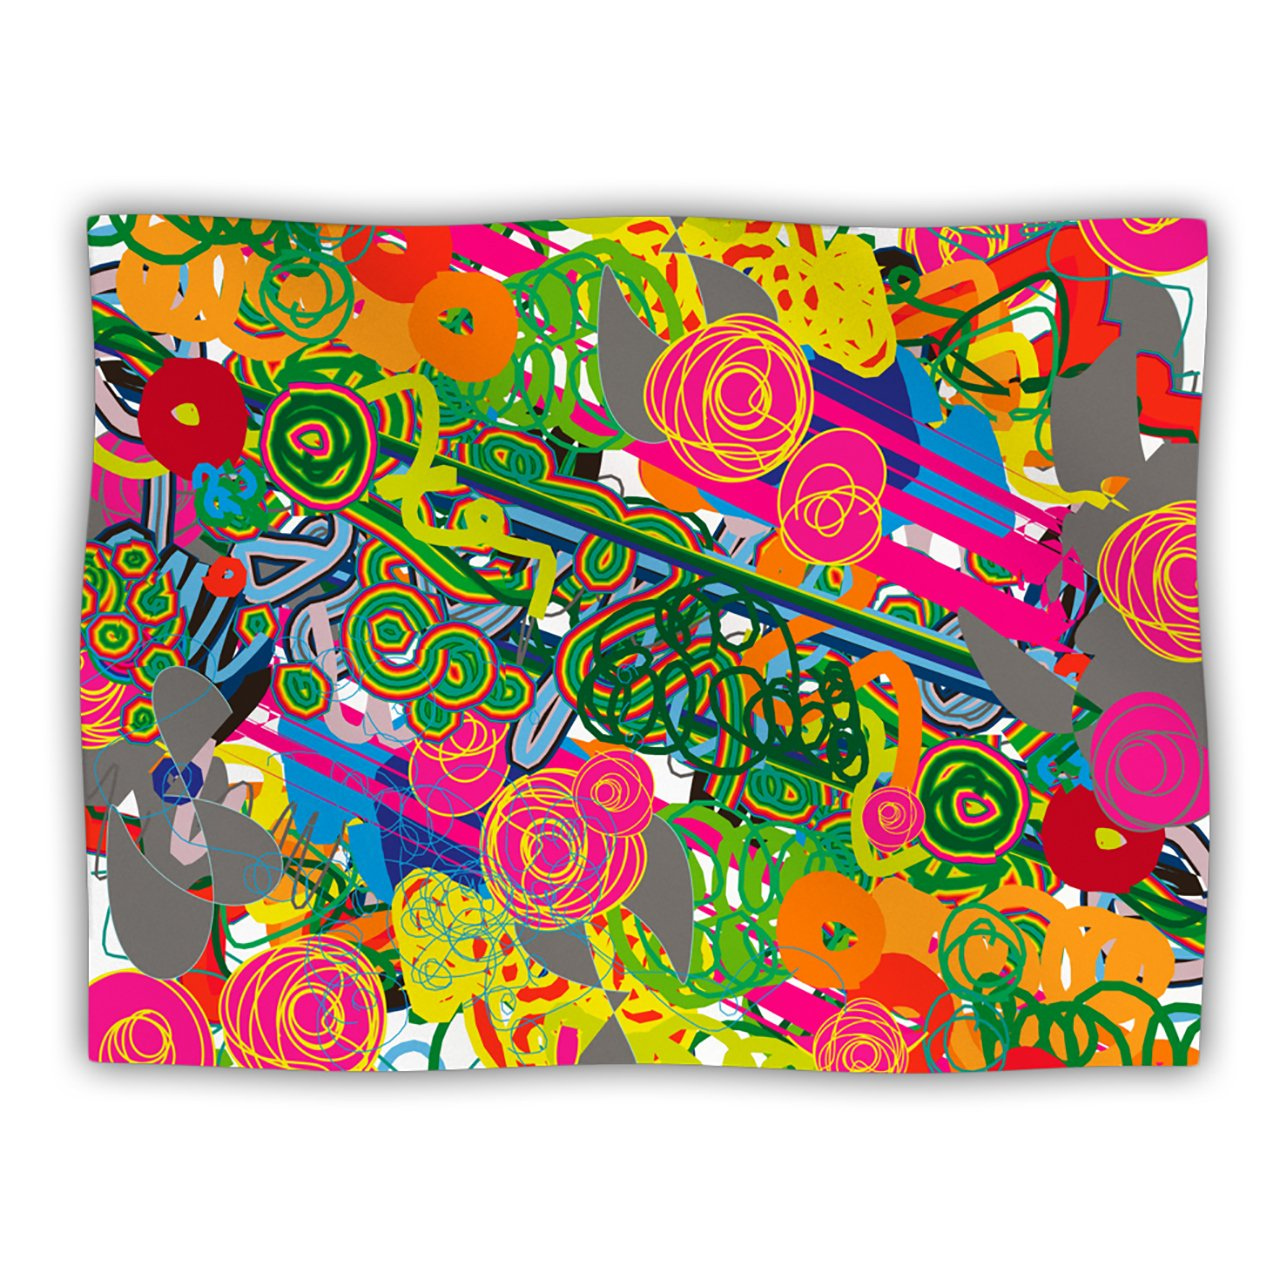 Kess InHouse Frederic Levy-Hadida  Psychedelic Garden  Dog Blanket, 60 by 50-Inch